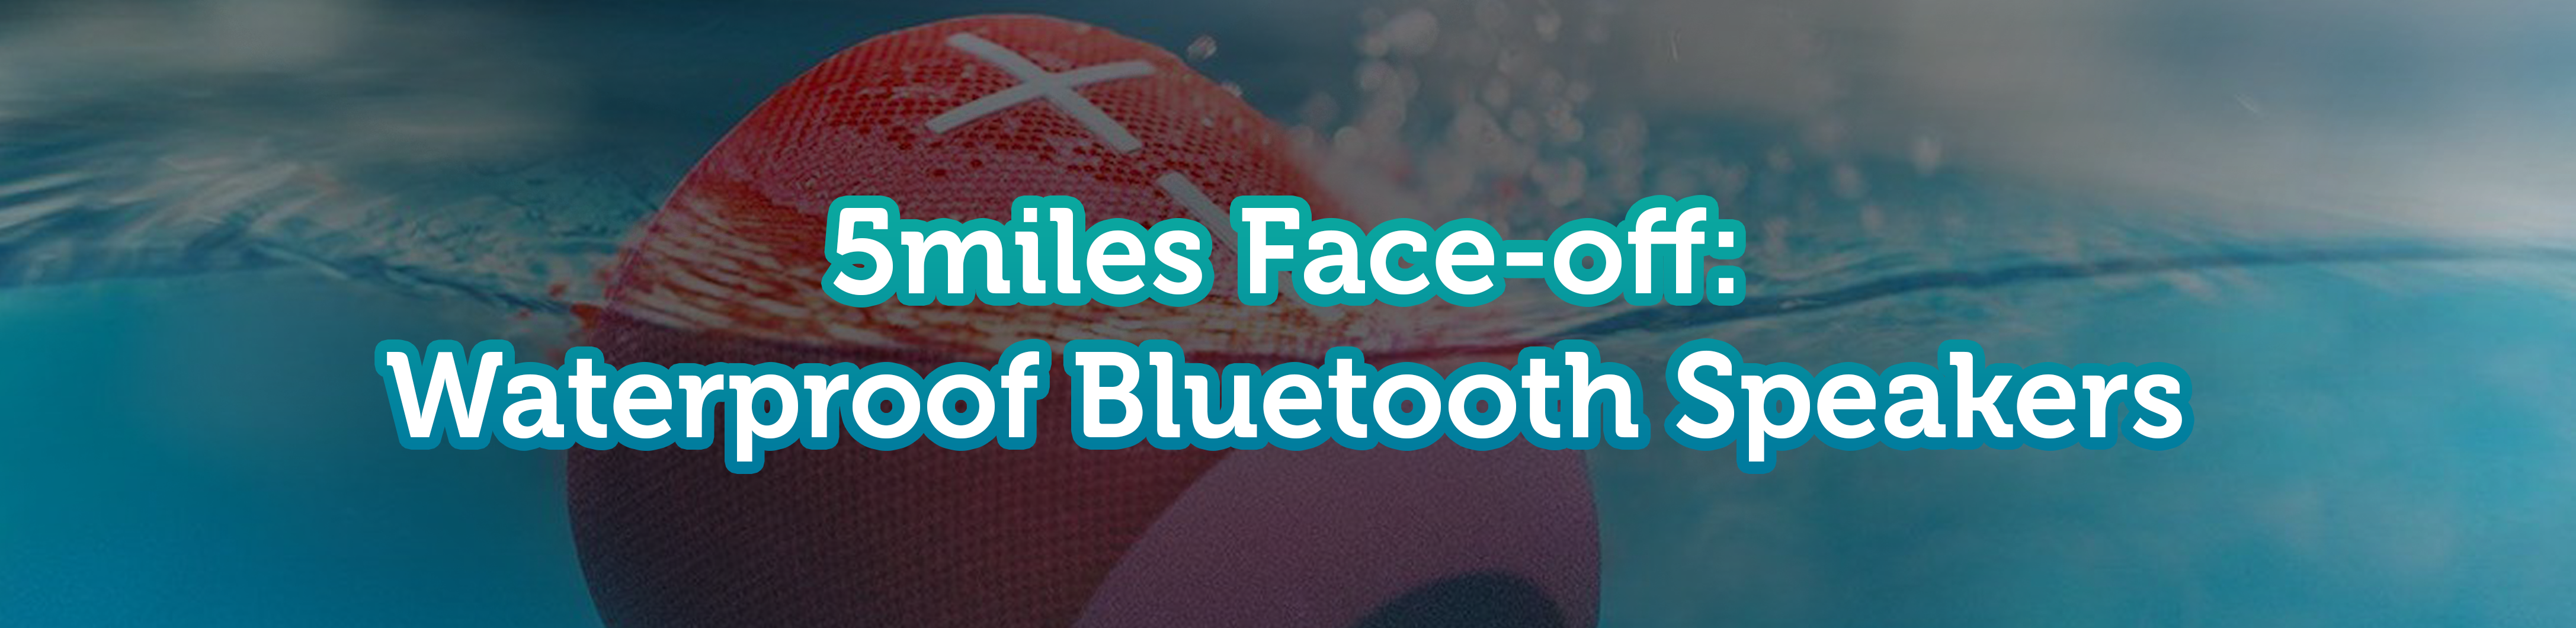 5miles Face-off: Bluetooth Waterproof Speakers